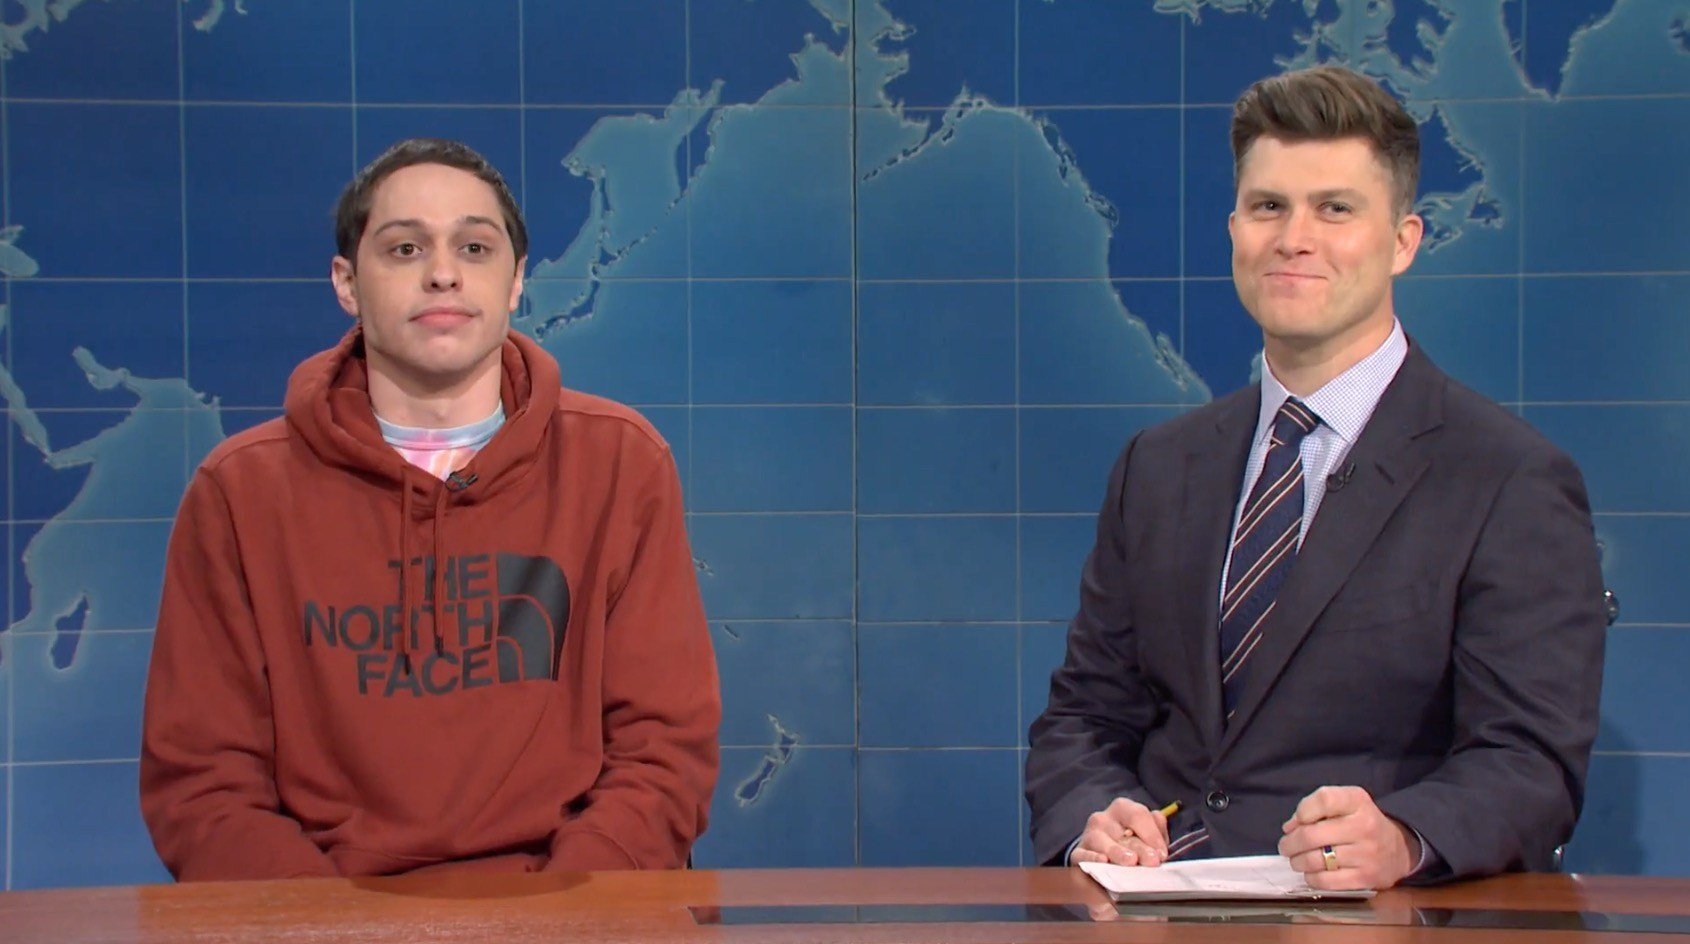 Saturday Night Live's Pete Davidson has discovered there's a vibrator with his face on it